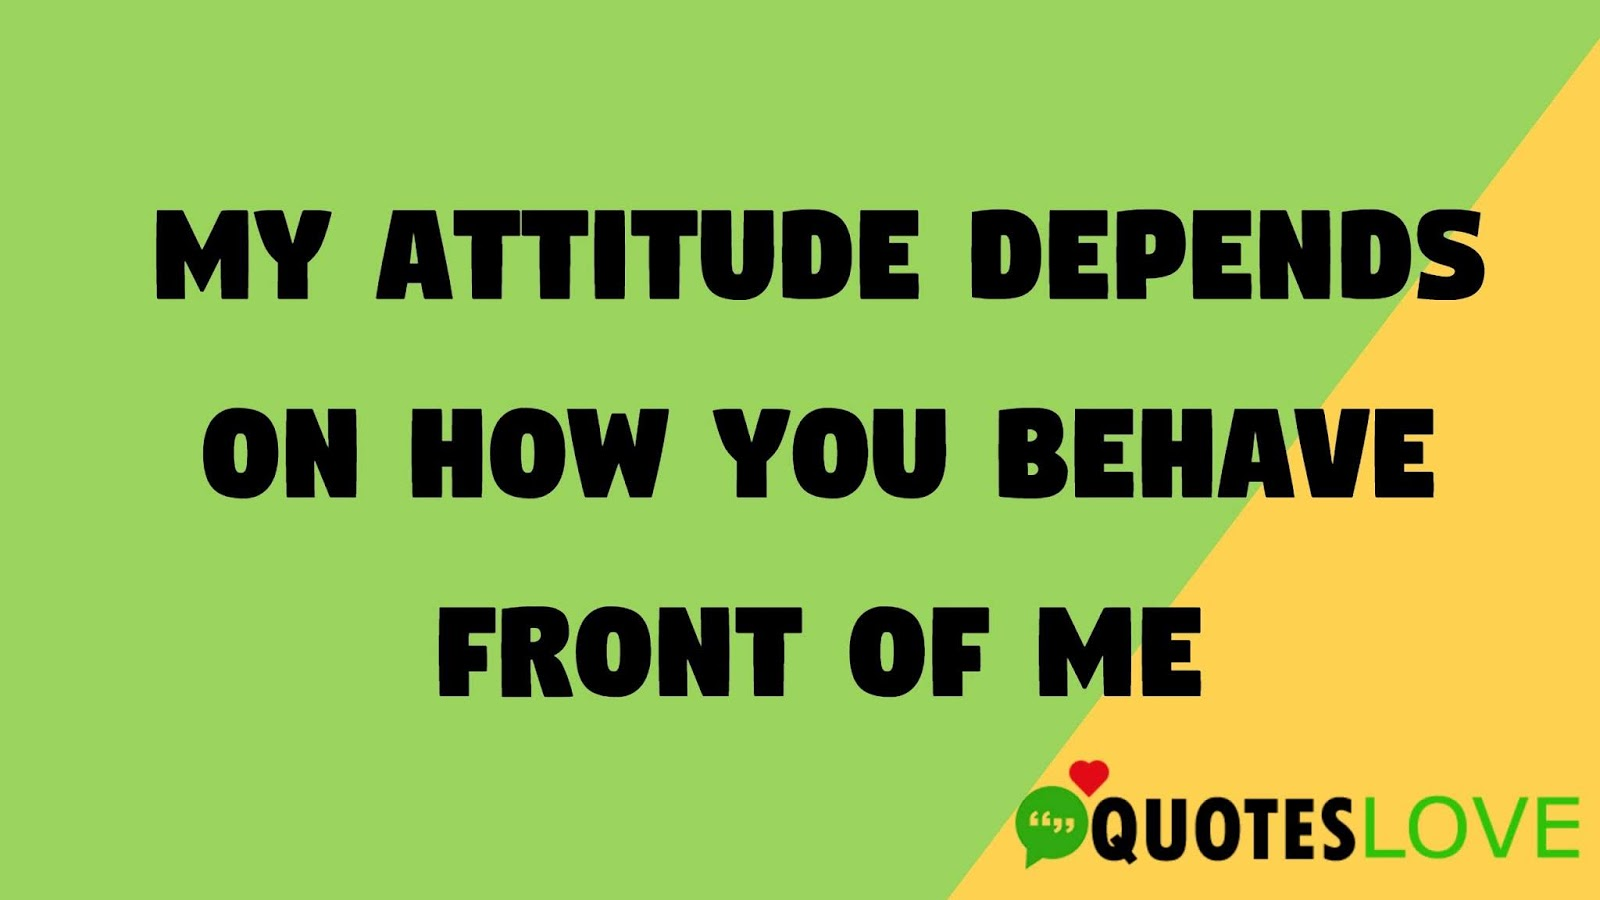 Attitude Quotes For Instagram